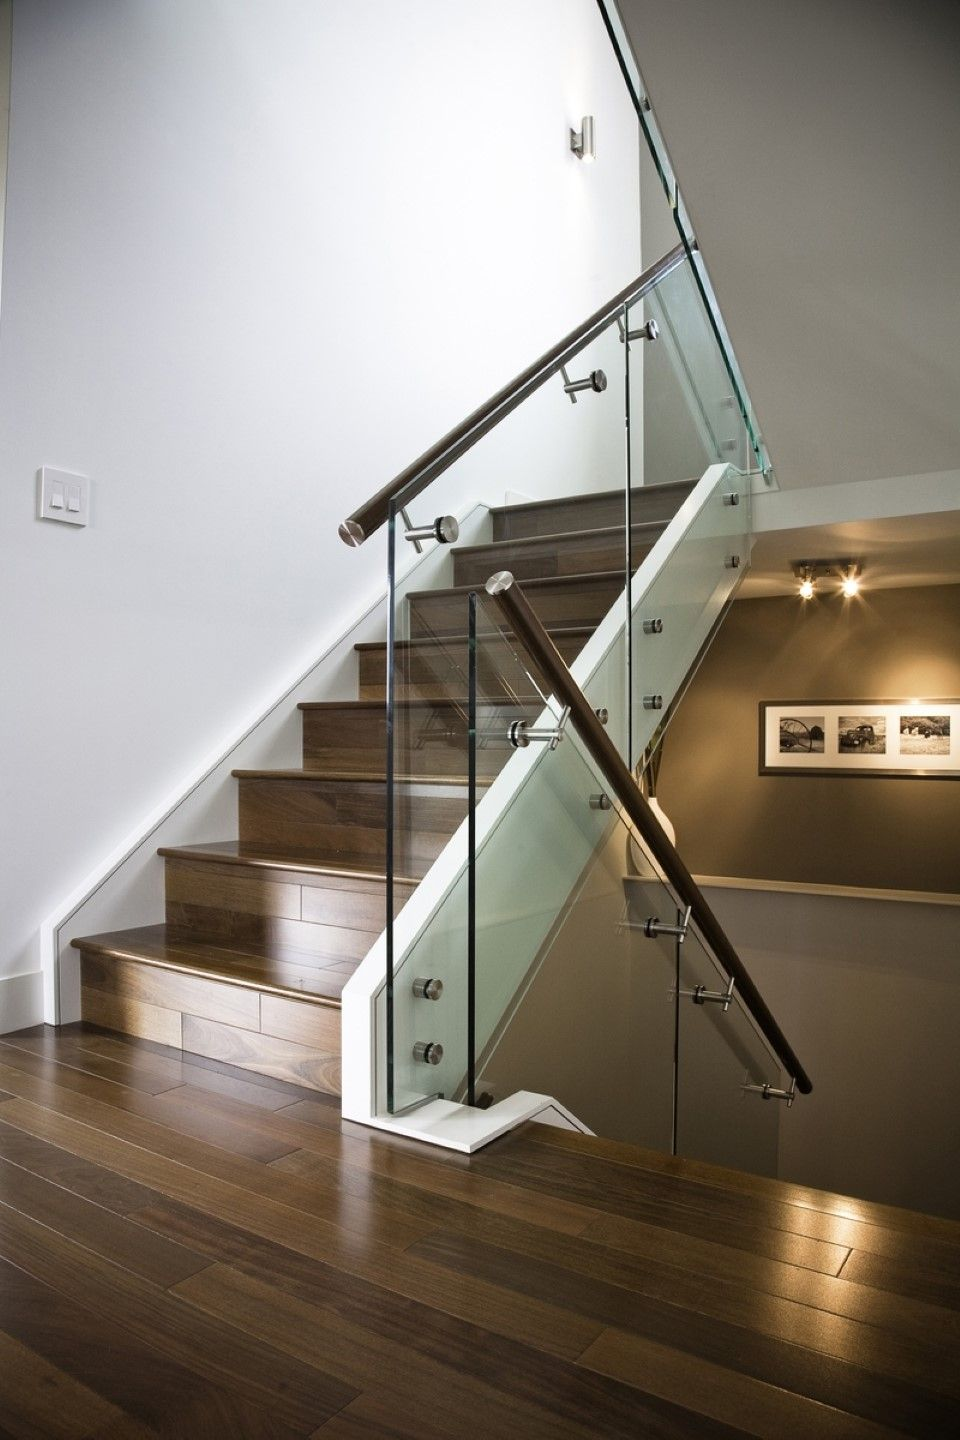 Interior:Modern Handrail For Stairs Design Ideas Plus Pretty Ceiling  Lighting Fixture Feat Hardwood Flooring